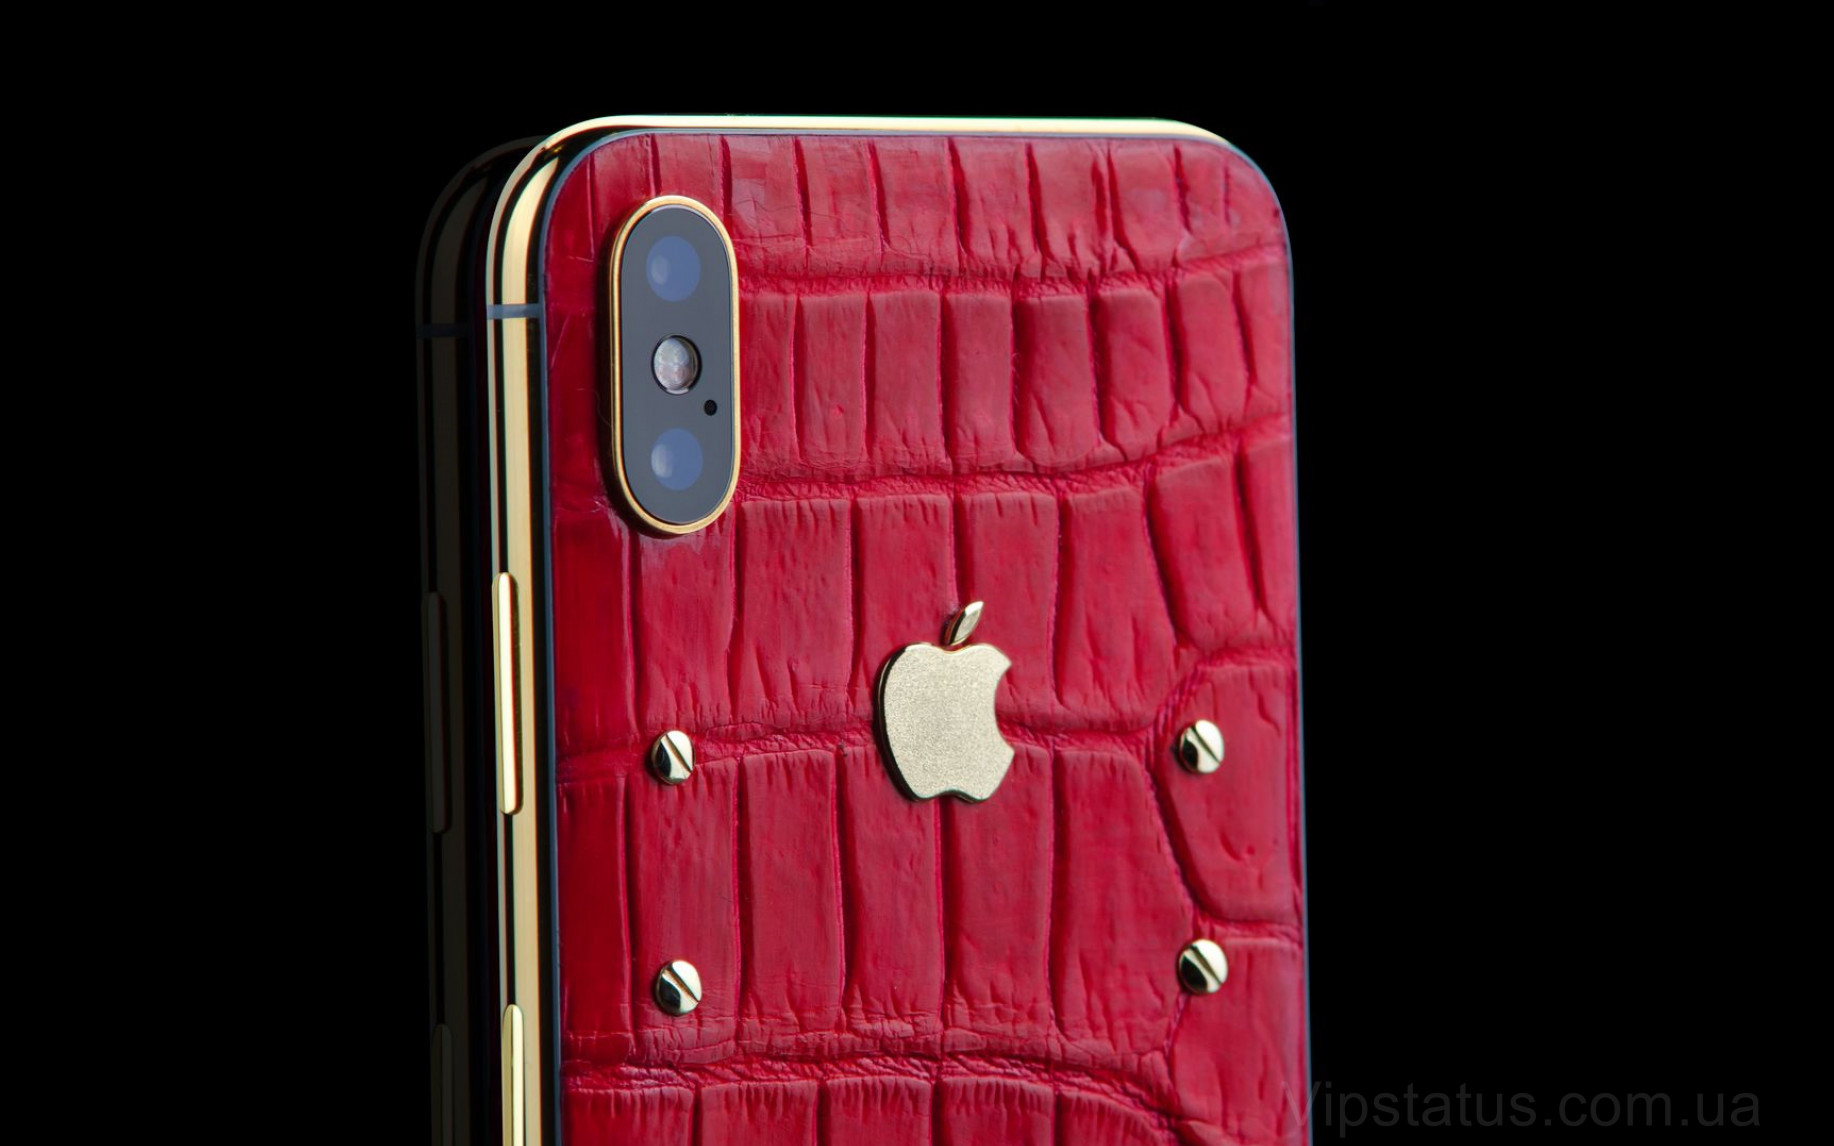 Элитный Red Princess IPHONE XS 512 GB Red Princess IPHONE XS 512 GB изображение 4